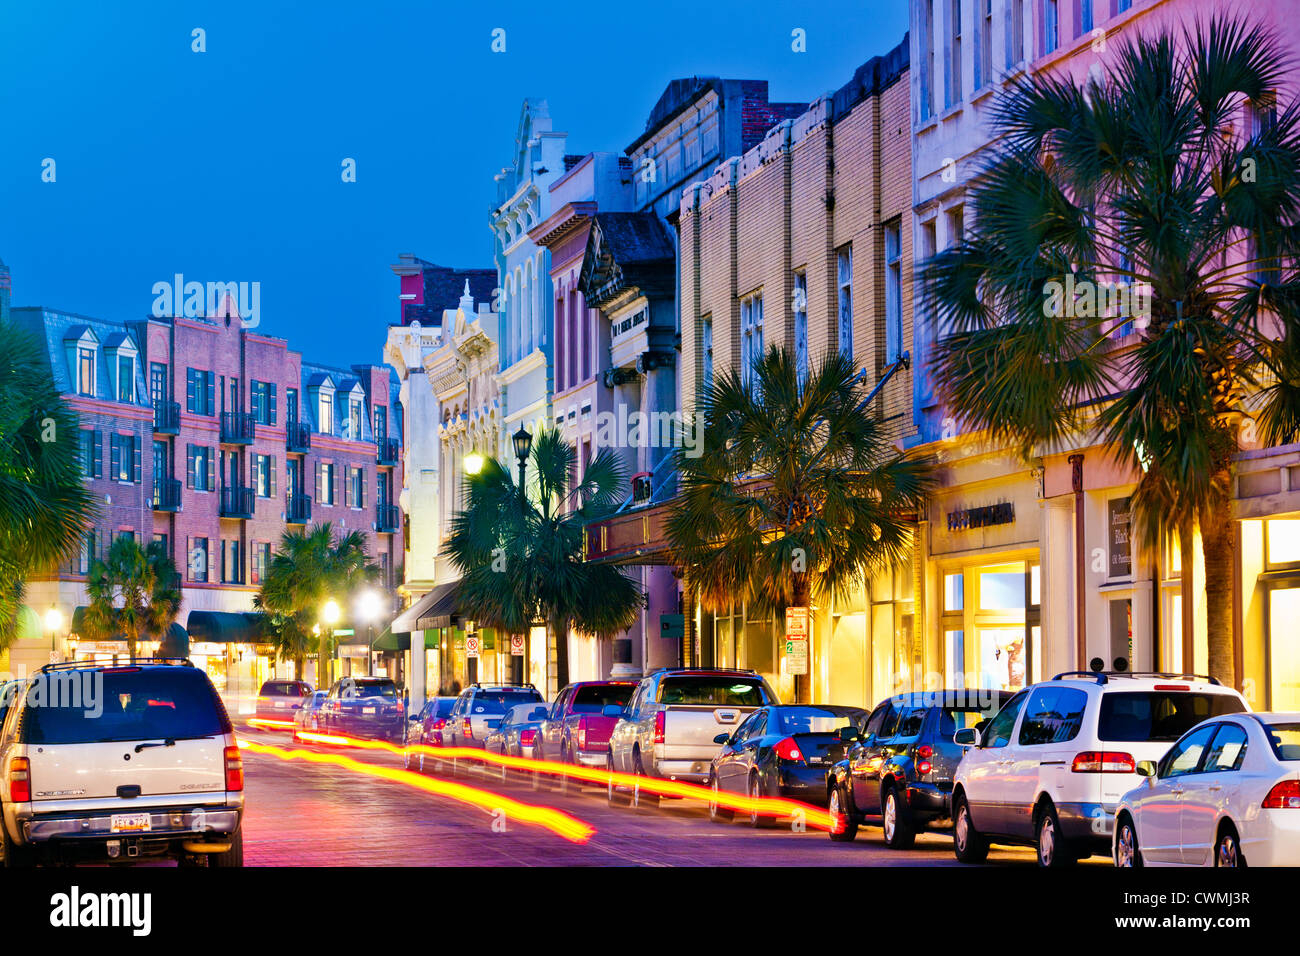 Aug 18,  · King St, Charleston, SC From what I could tell, King Street is the main shopping & dining hub in downtown. Get quick answers from King Street staff and past visitors. Note: your question will be posted publicly on the Questions & Answers page.4/4().